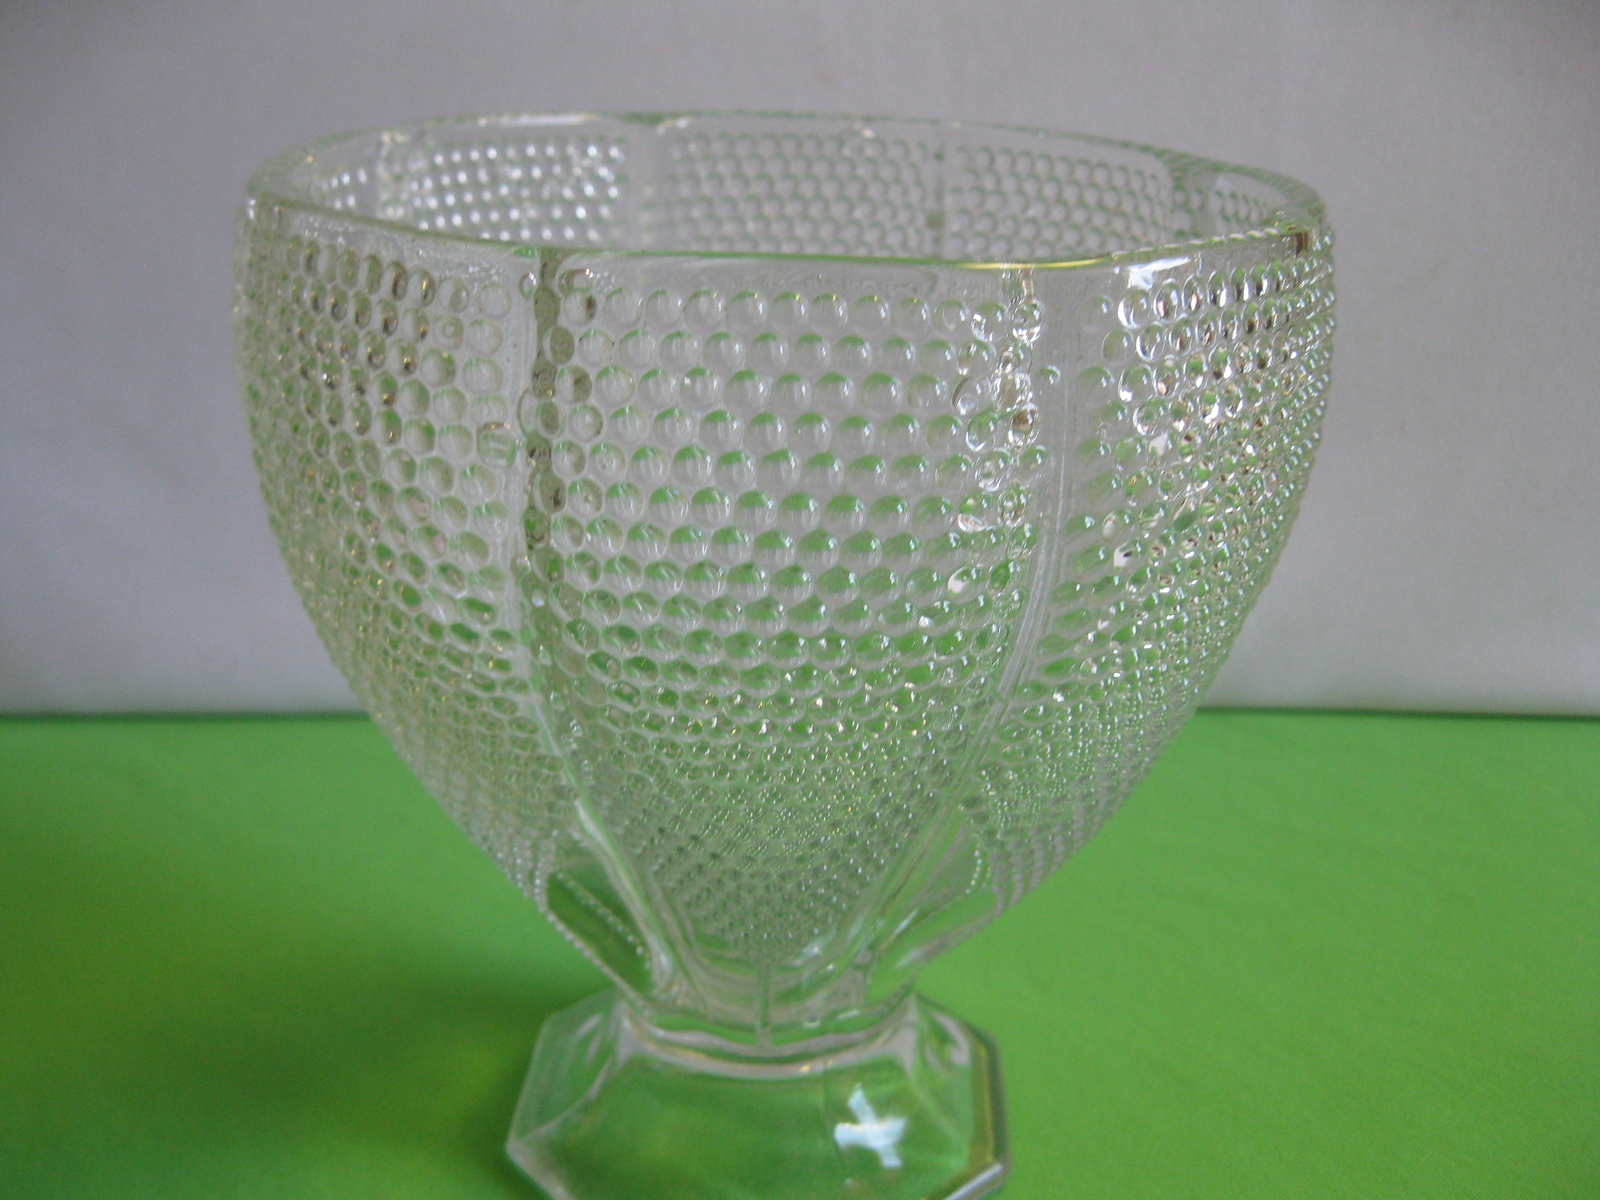 L E Smith Glass Crystal Dewpoint Bowl Pillow Footed Vase Made in USA Vintage